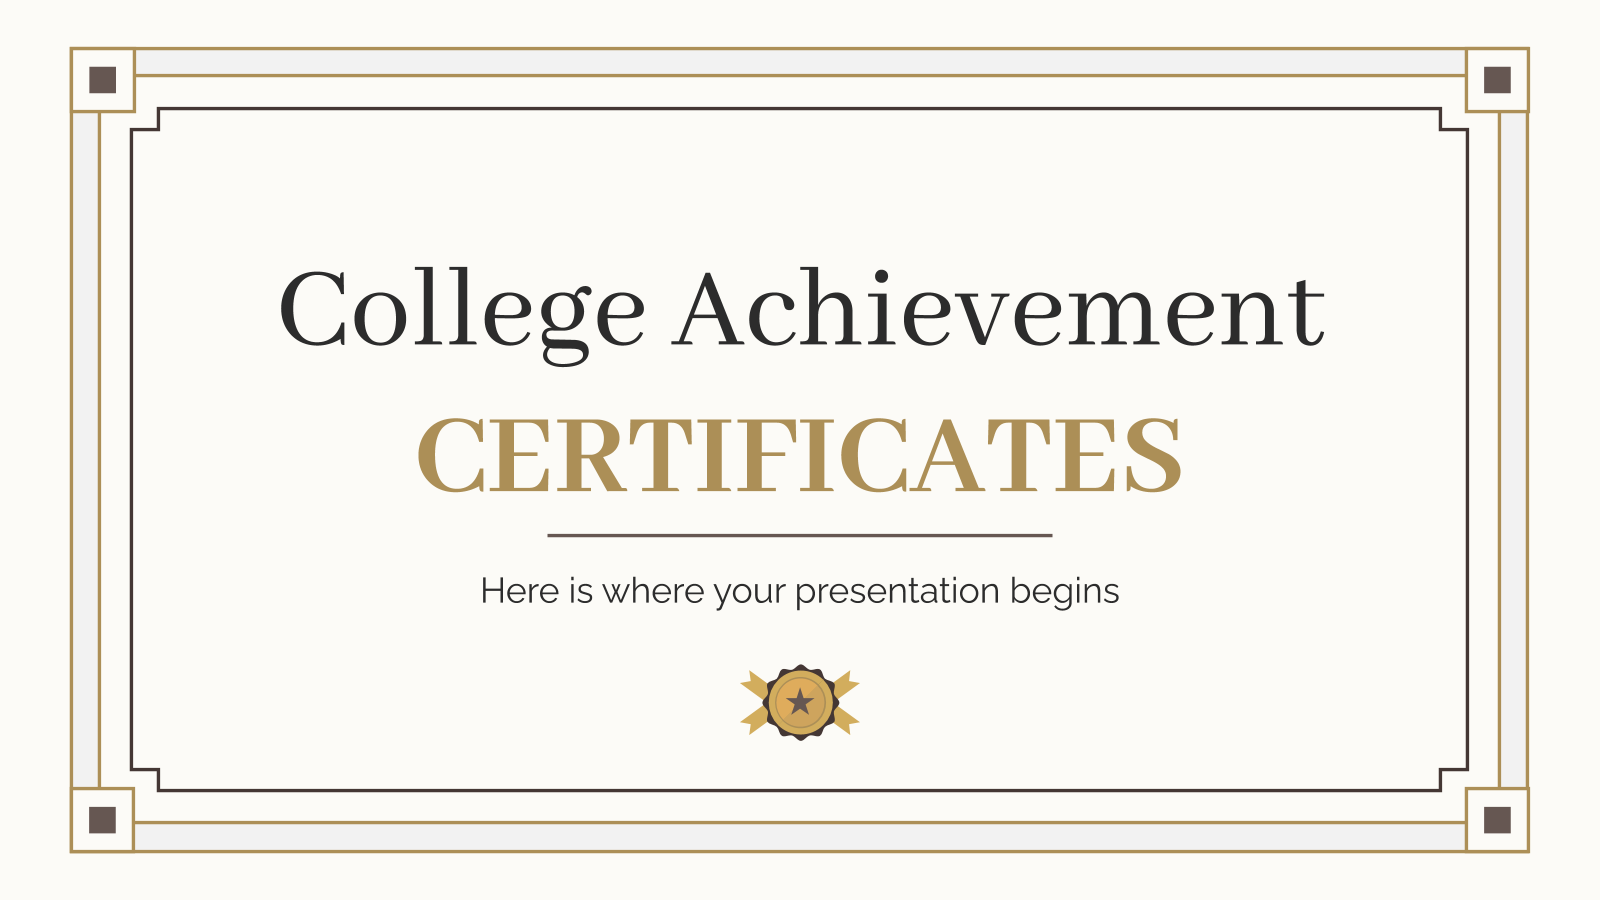 College Achievement Certificates presentation template